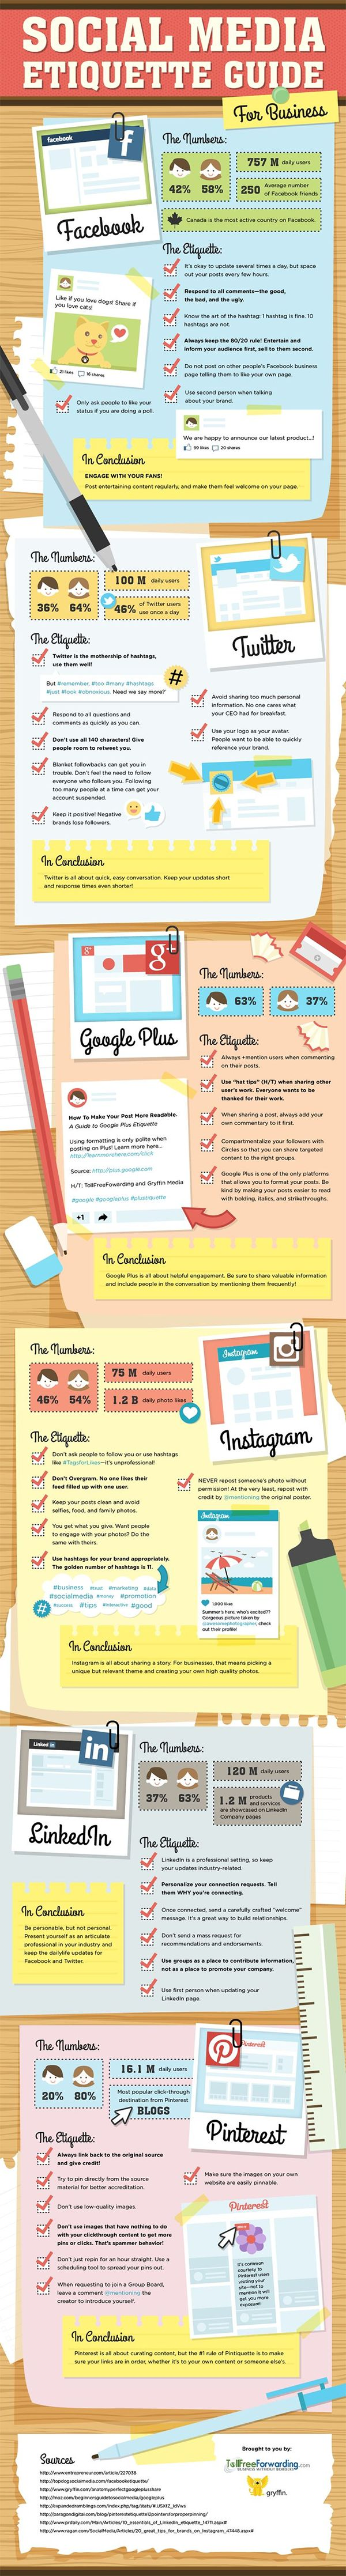 This guide will help you on social media sites.  38 Social Media Etiquette Rules You Must Follow